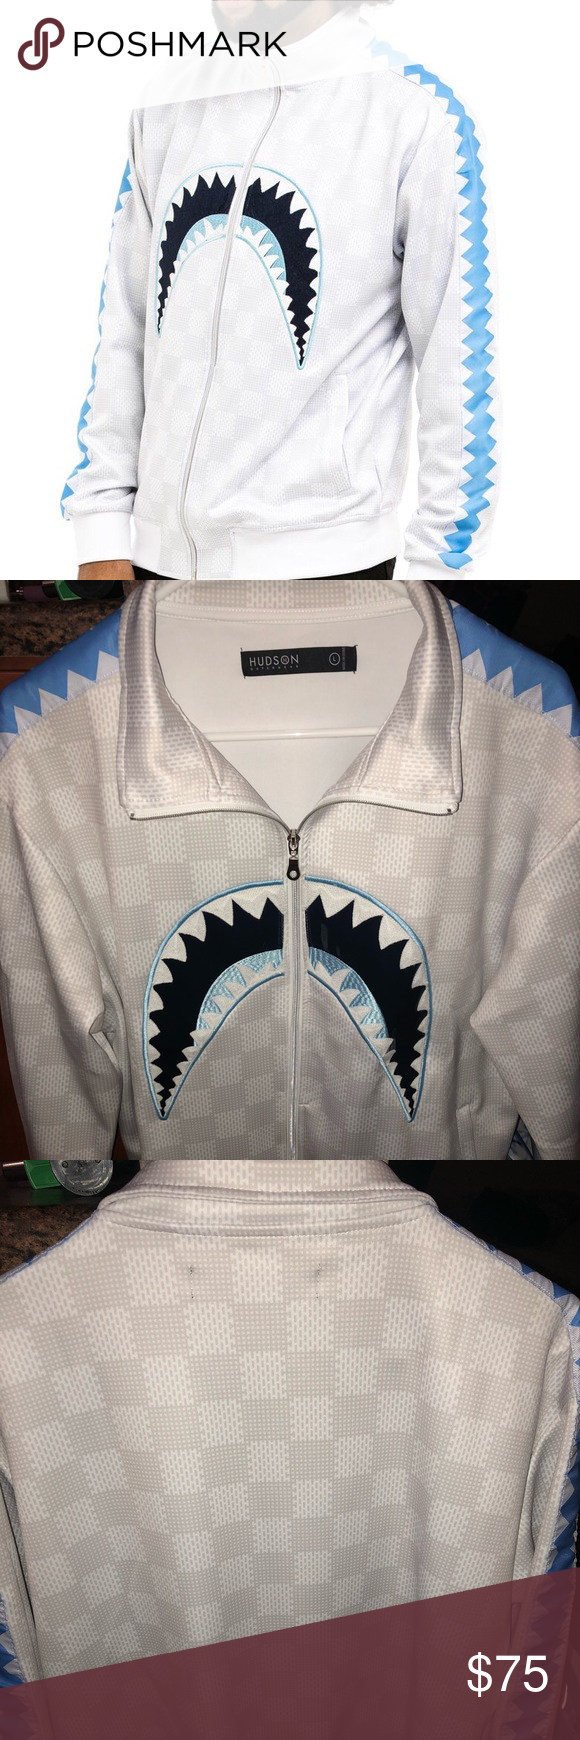 Hudson Outerwear Stretchy Shark Jacket Nwt Urban Outfits Outerwear Stretchy [ 1740 x 580 Pixel ]